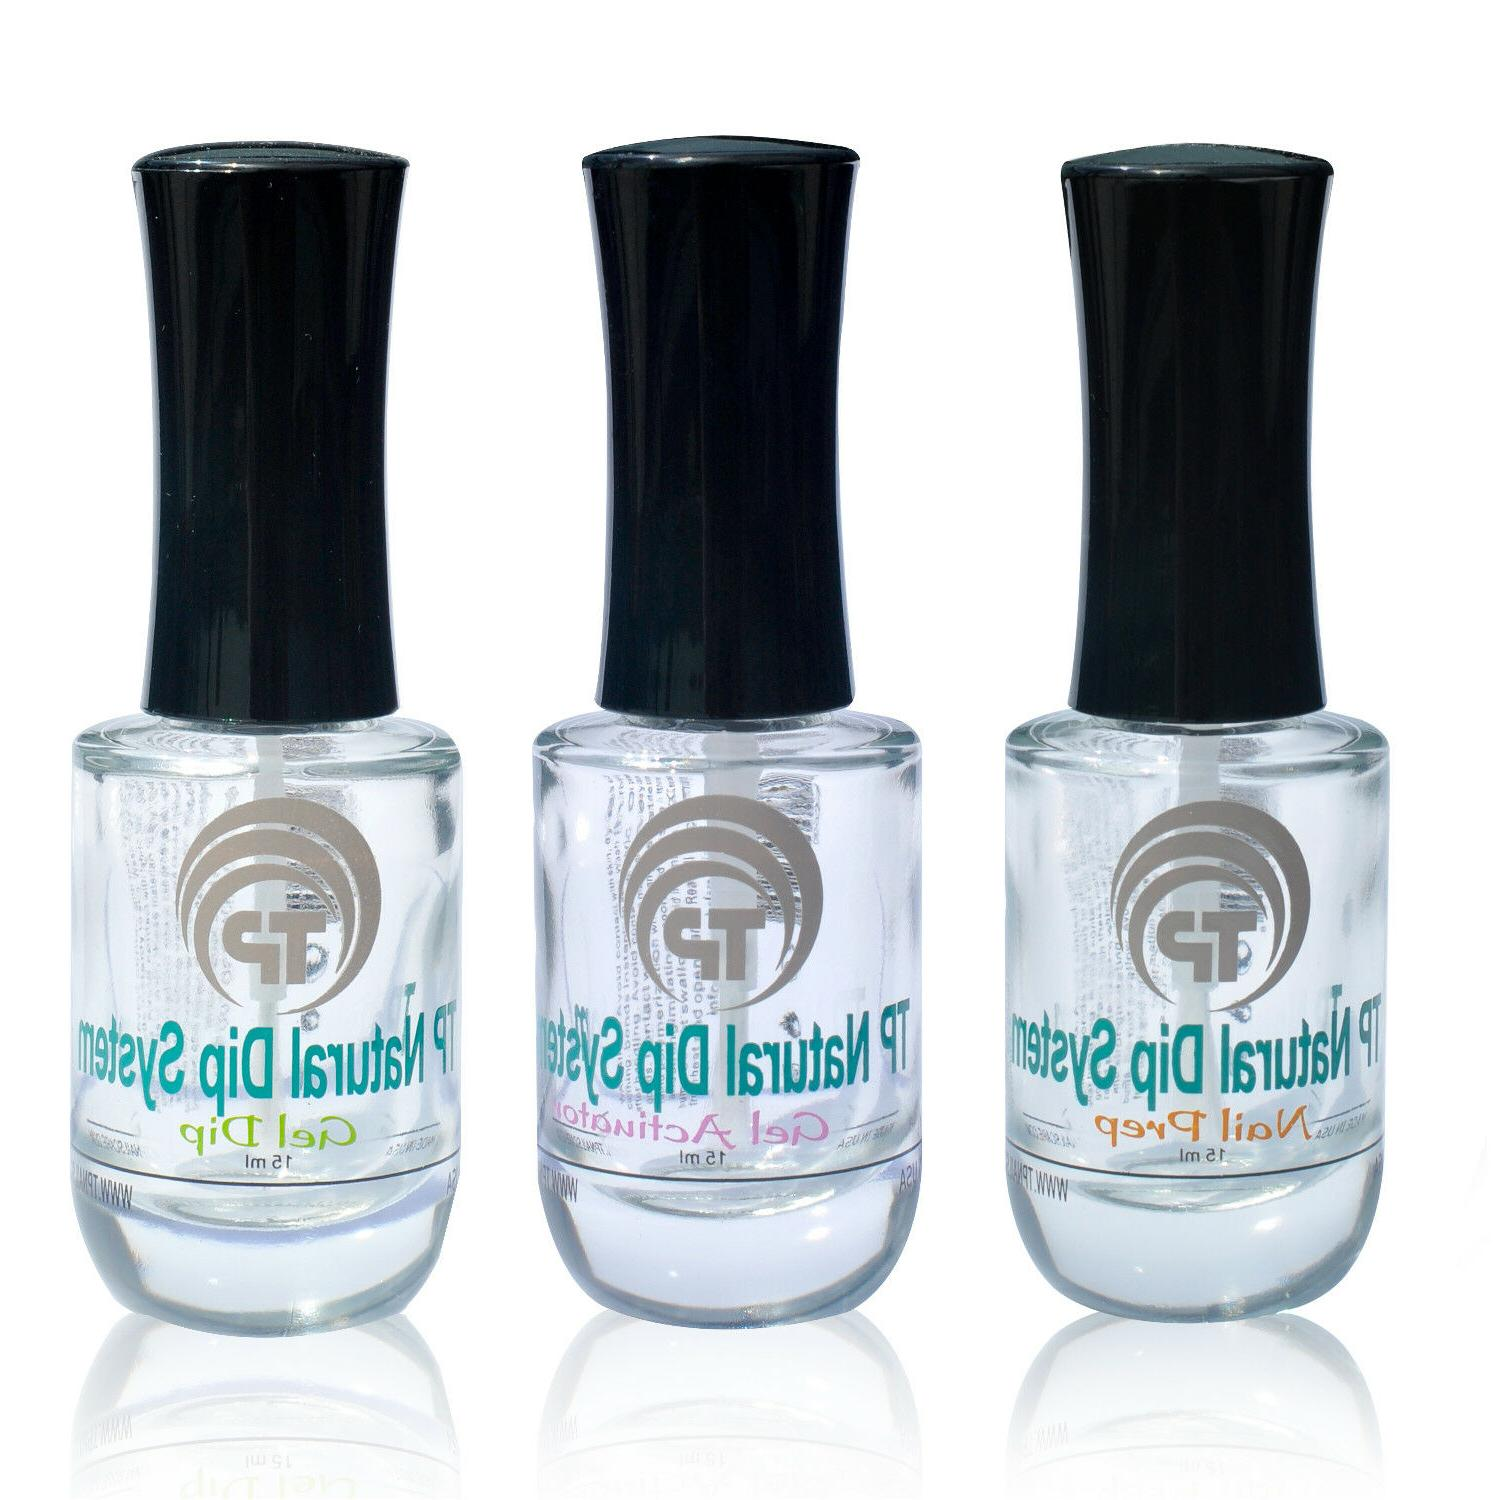 French Manicure Starter to use powder oz. per